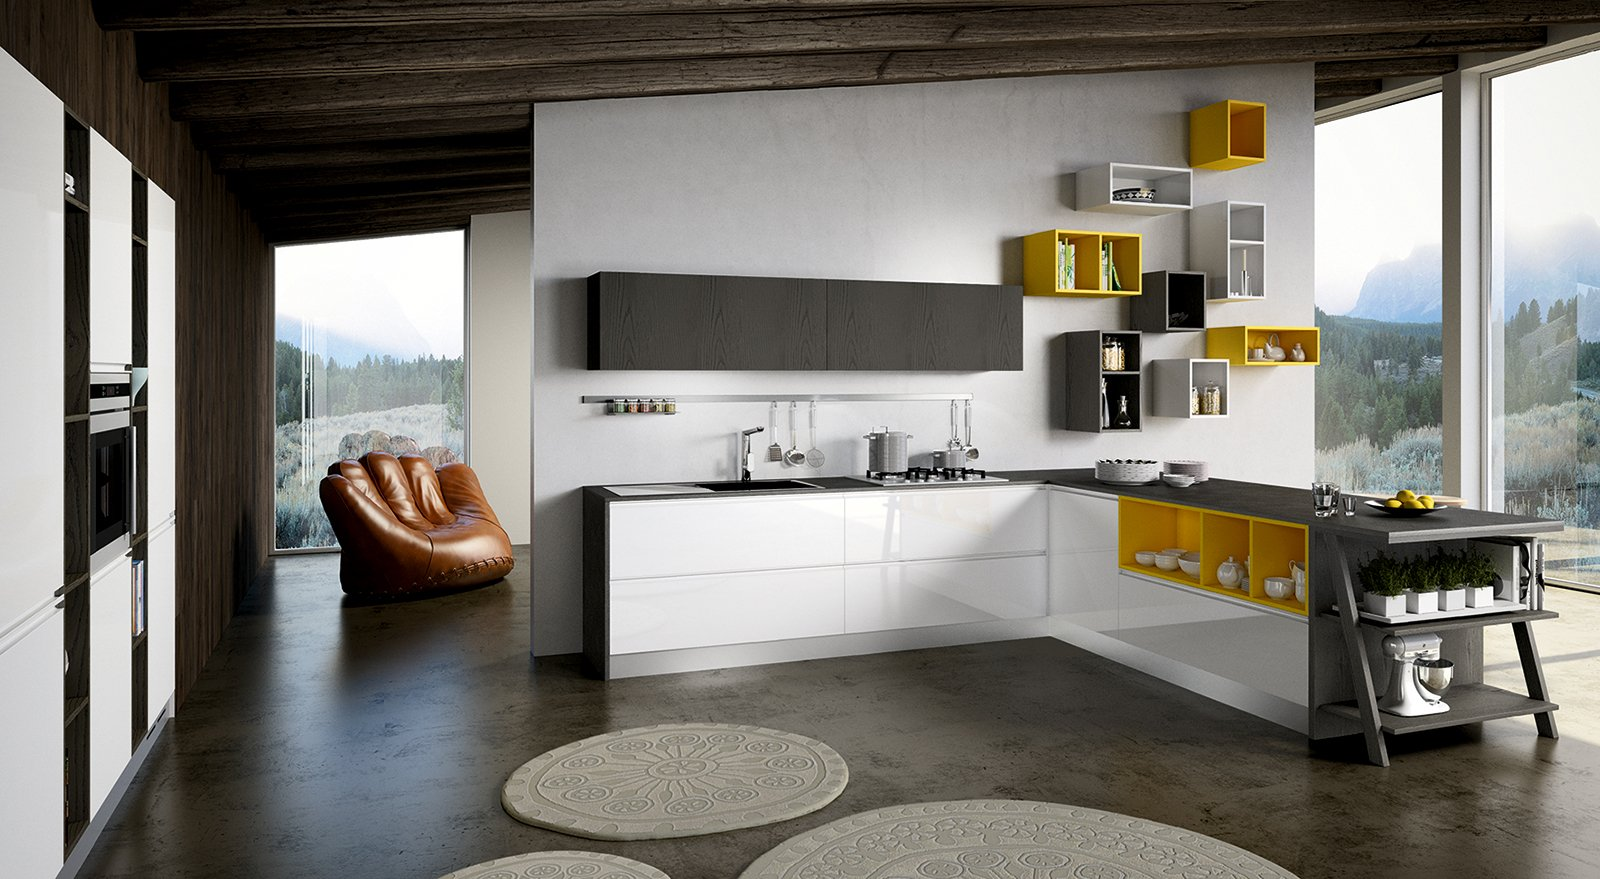 Best composizione cucine moderne pictures ideas design - Composizioni cucine moderne ...